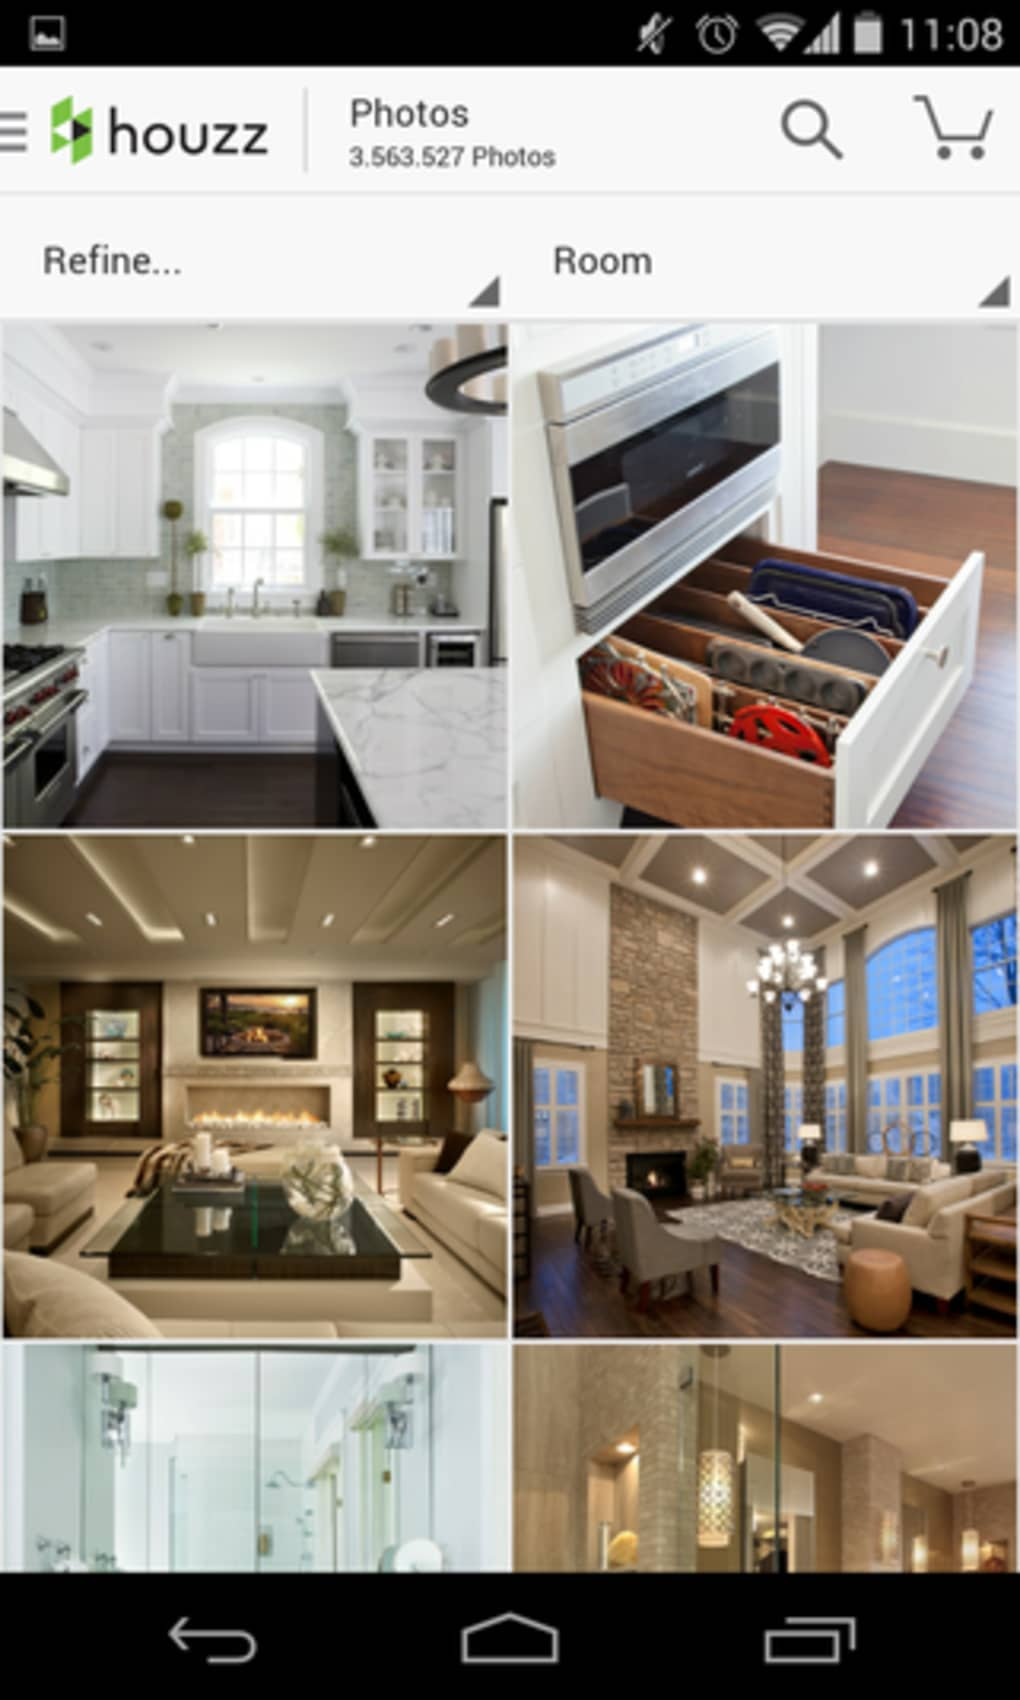 Houzz interior design ideas para iphone descargar for Houzz interior design ideas